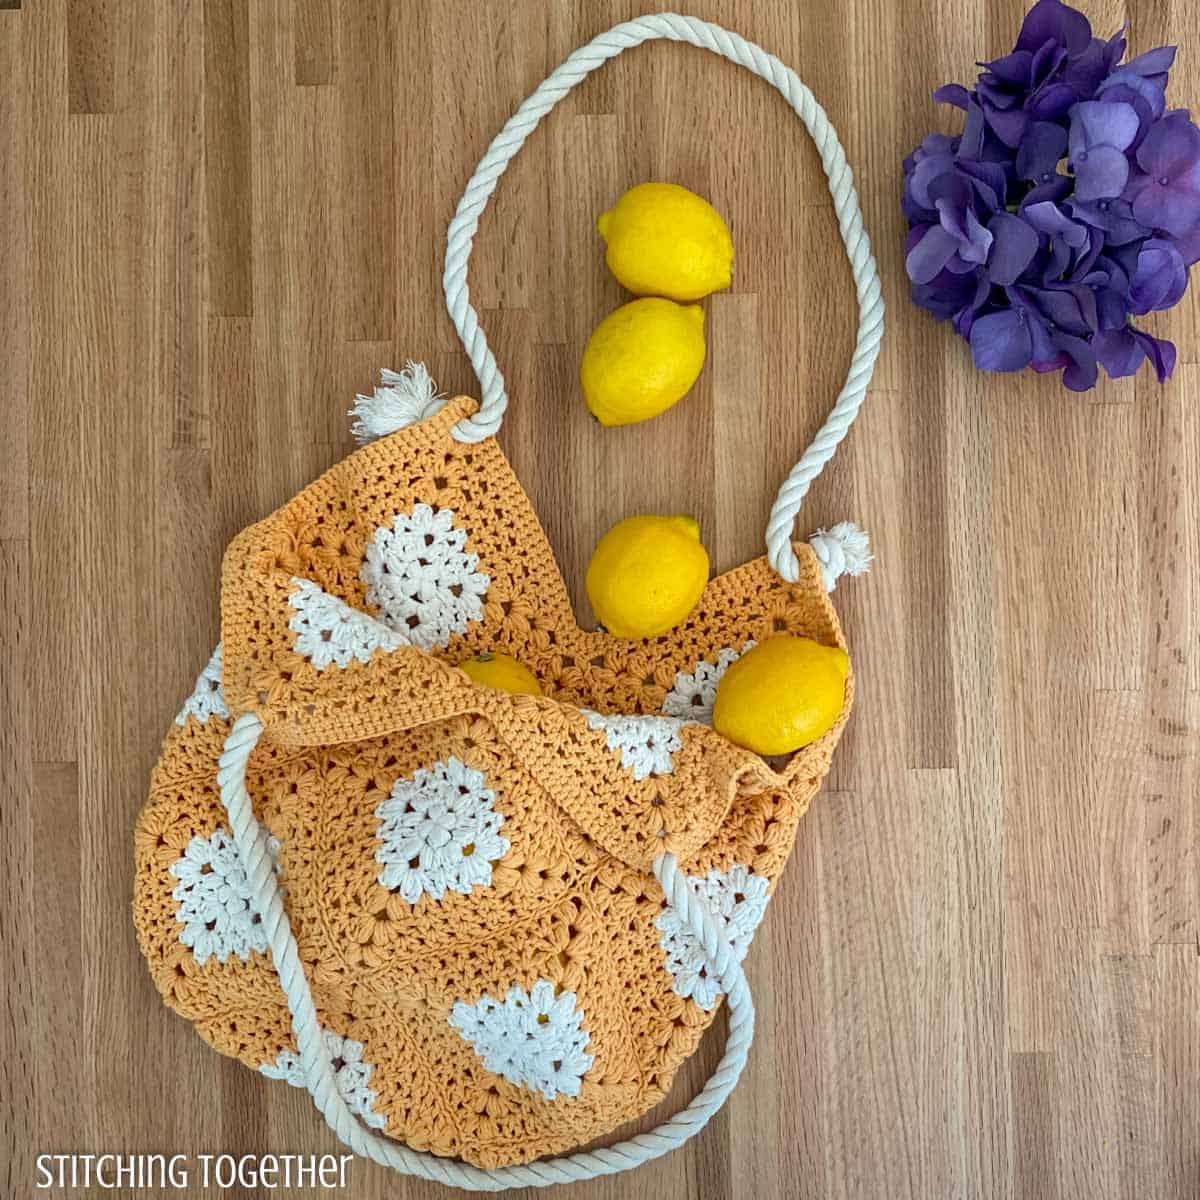 crochet market bag on a counter with lemons and flowers